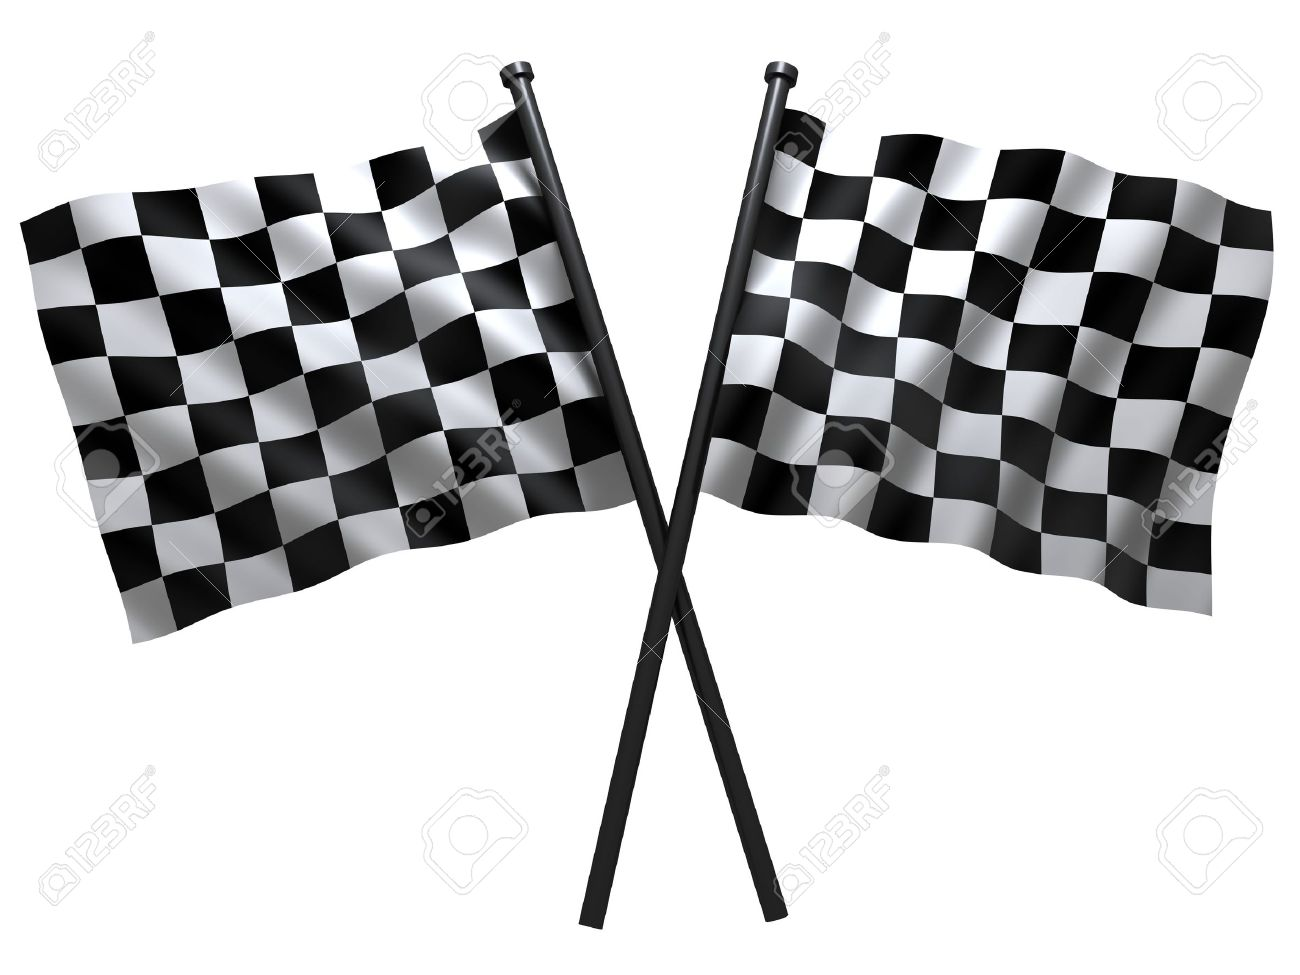 flag of start or finesha, done in 3d Stock Photo - 4998080